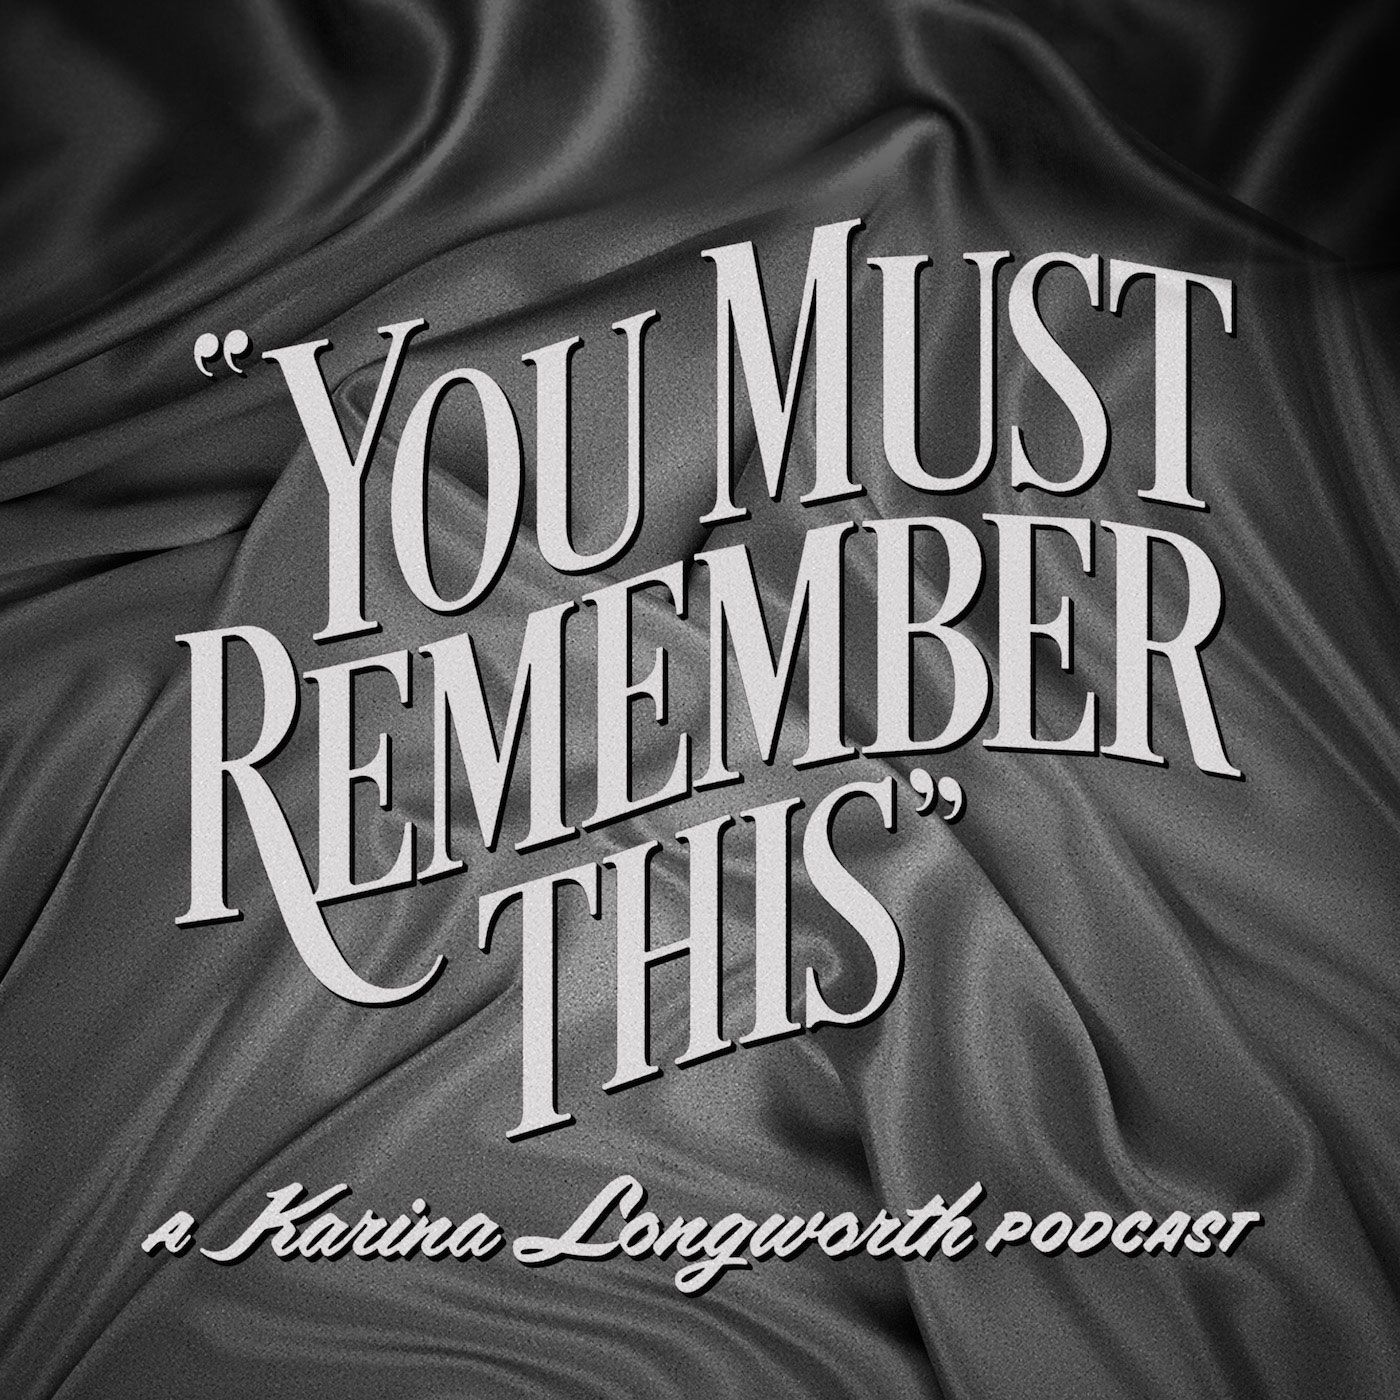 Podcast Suggestion: You Must Remember This